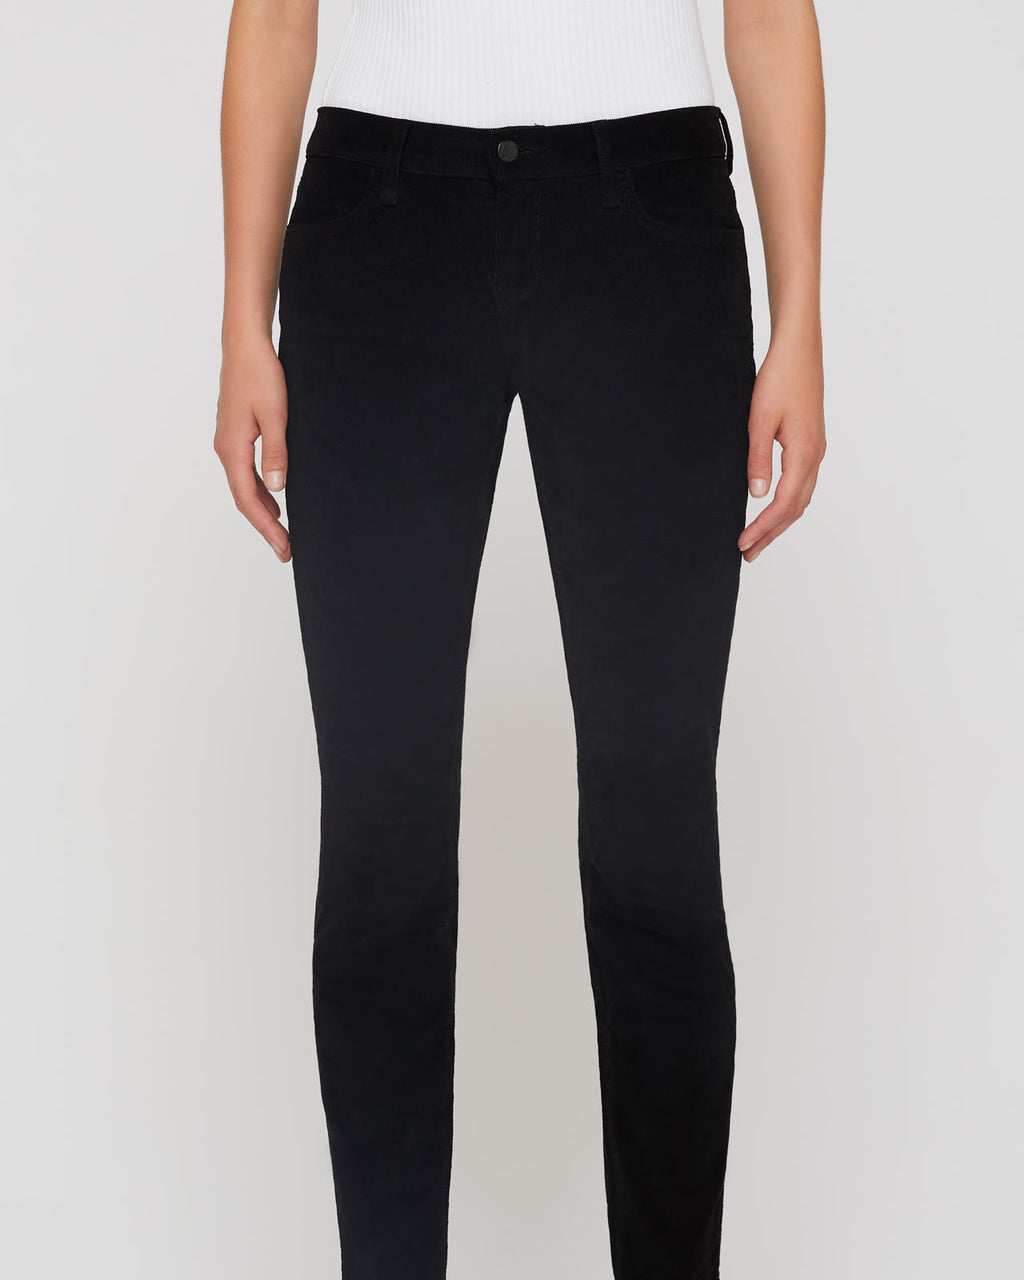 The Sophia Jean in Black Corduroy